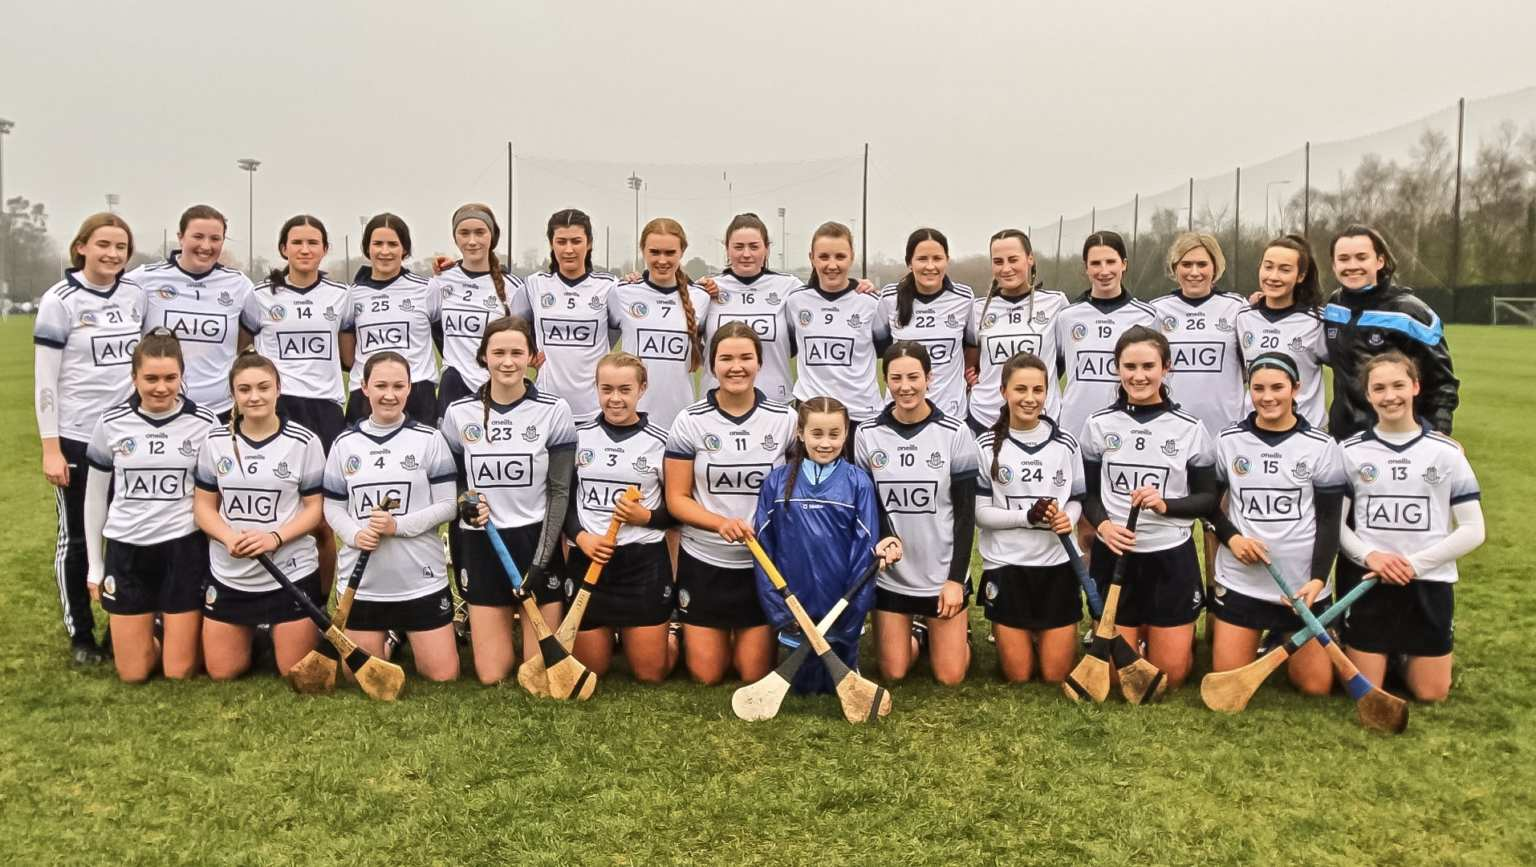 The Dublin minor camogie squad which sees eight changes to the starting team for their All Ireland championship round 2 game against Laois.